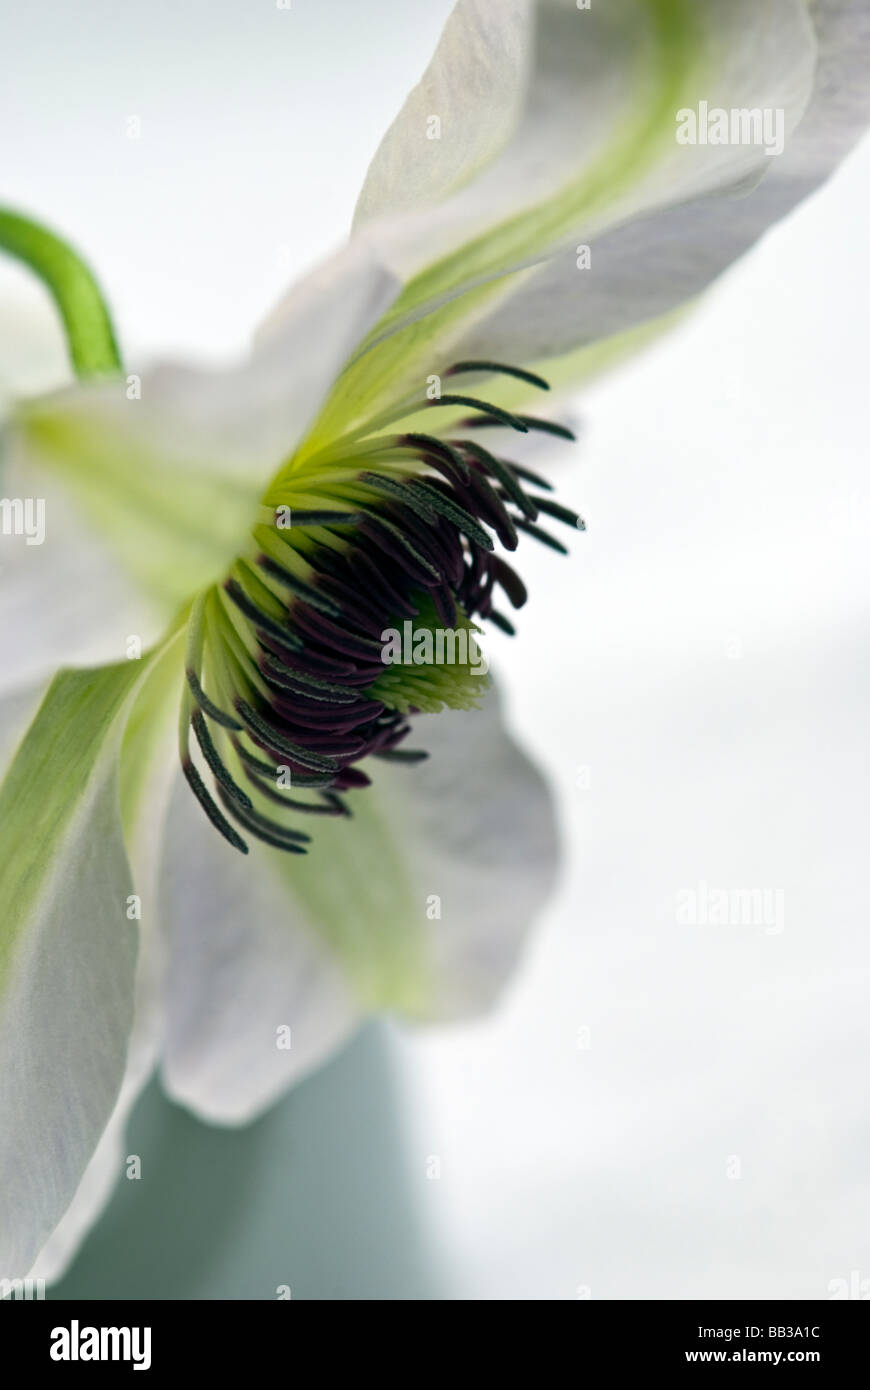 Clematis Ranunculaceae,Miss Bateman. A close up shot of the vibrant white and green striped flowerhead and bright - Stock Image